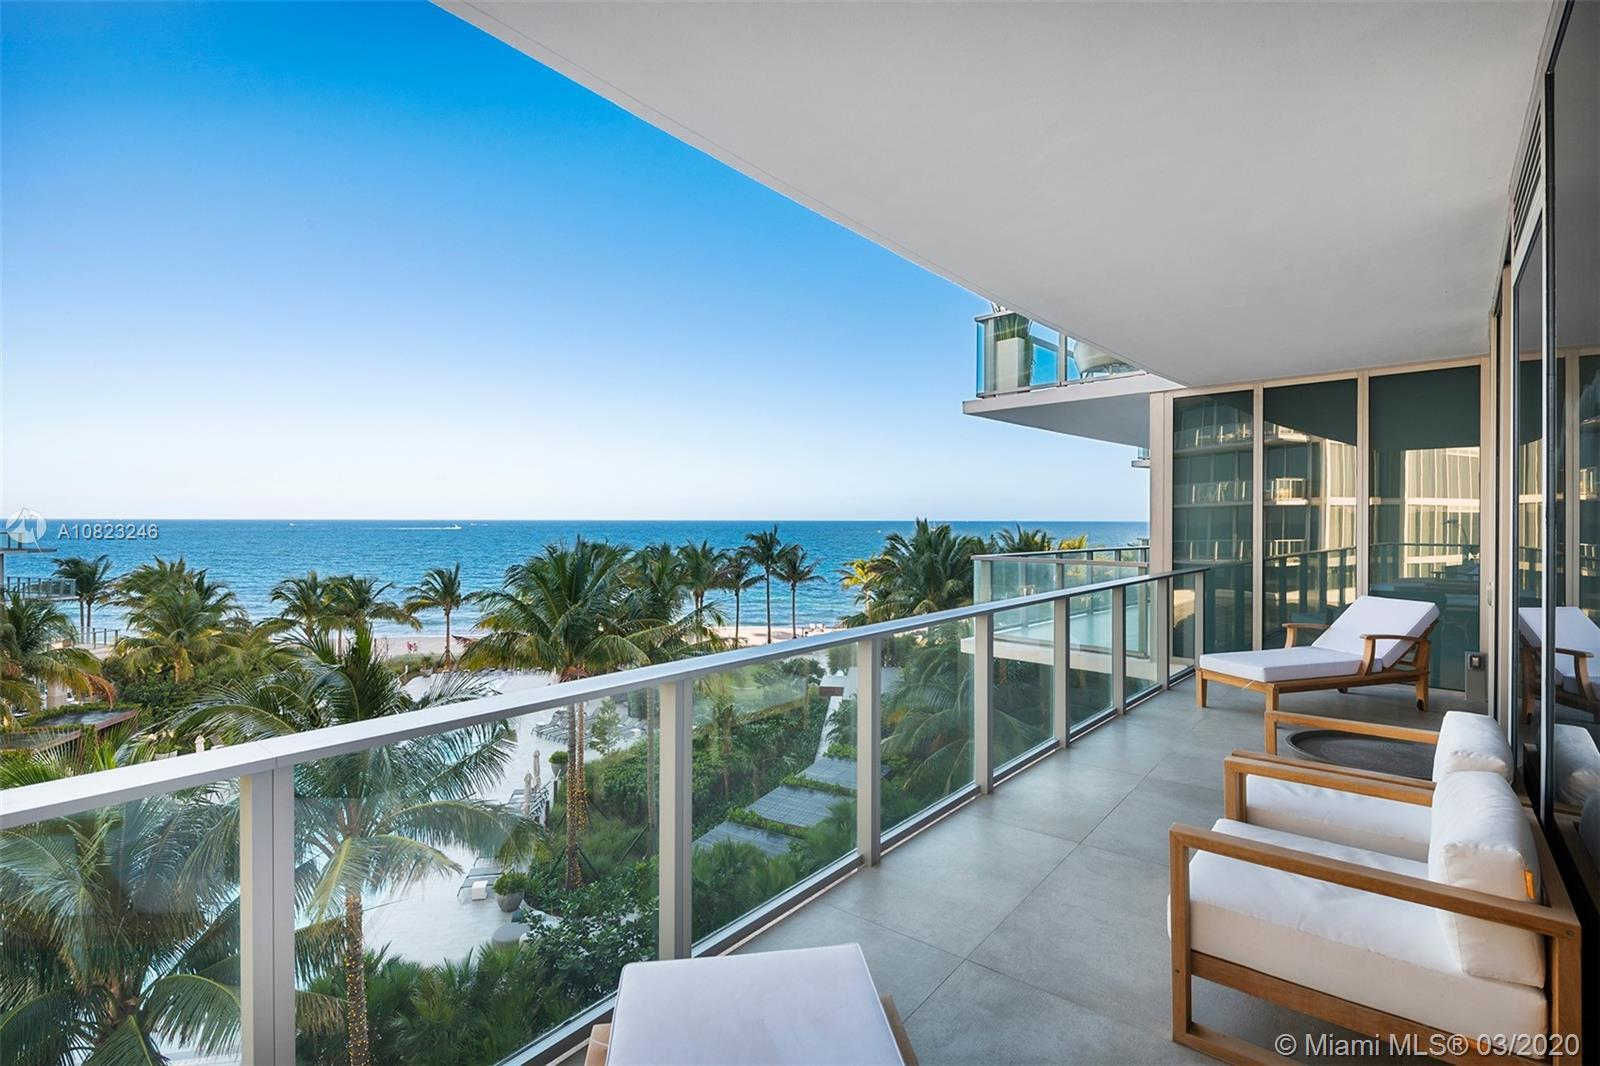 AUBERGE BEACH RESIDENCES & SPA ON FORT LAUDERDALE BEACH IS A JEWEL OF THE ULTRA LUXURY LIFESTYLE, OF